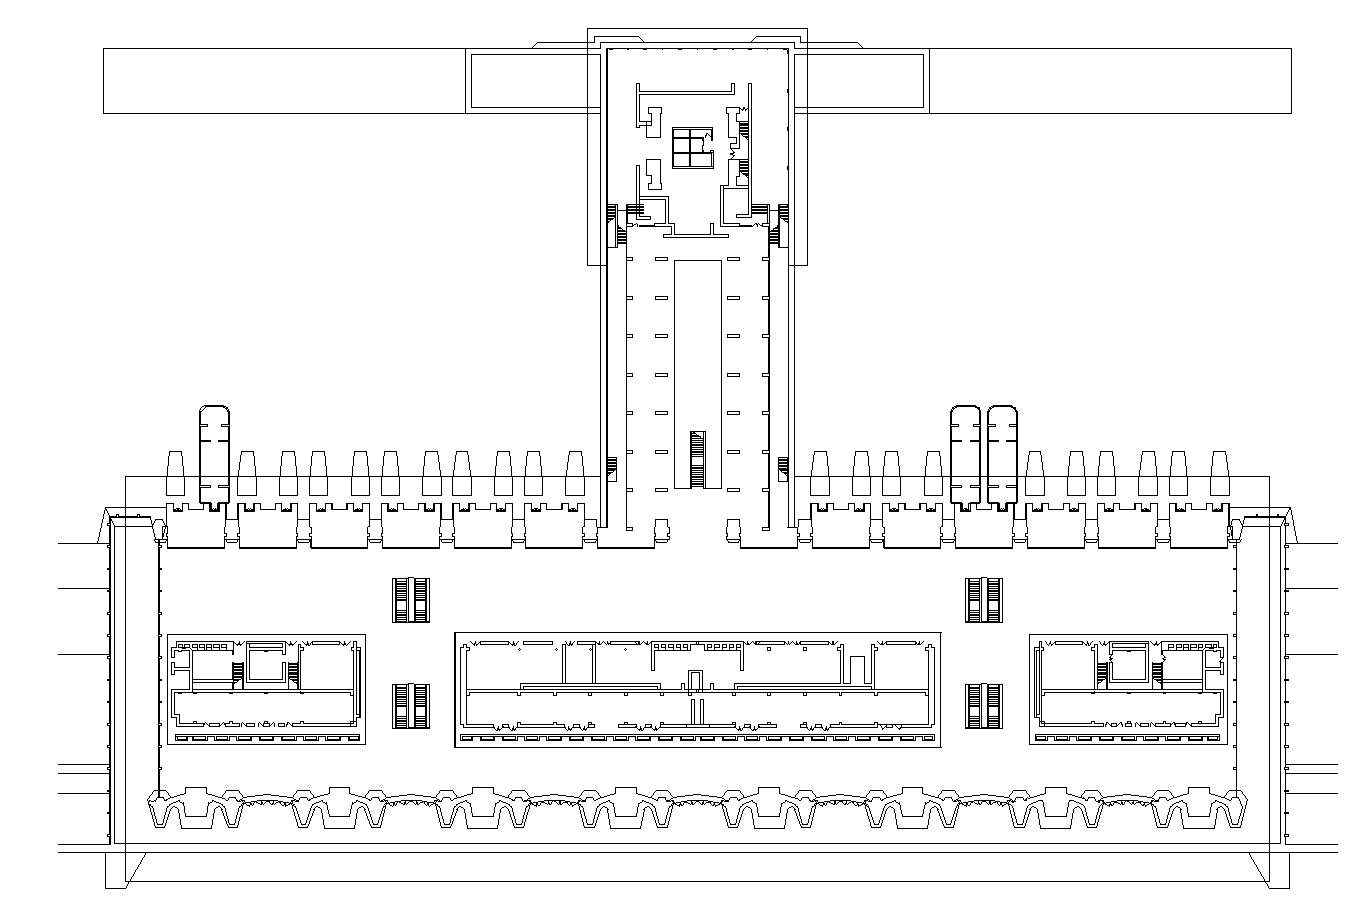 Free Washington Dulles International Airport Drawing Architectural Block Diagram Images Download The Dwg Files Are Compatible Back To Autocad 2000 These Cad Drawings Now